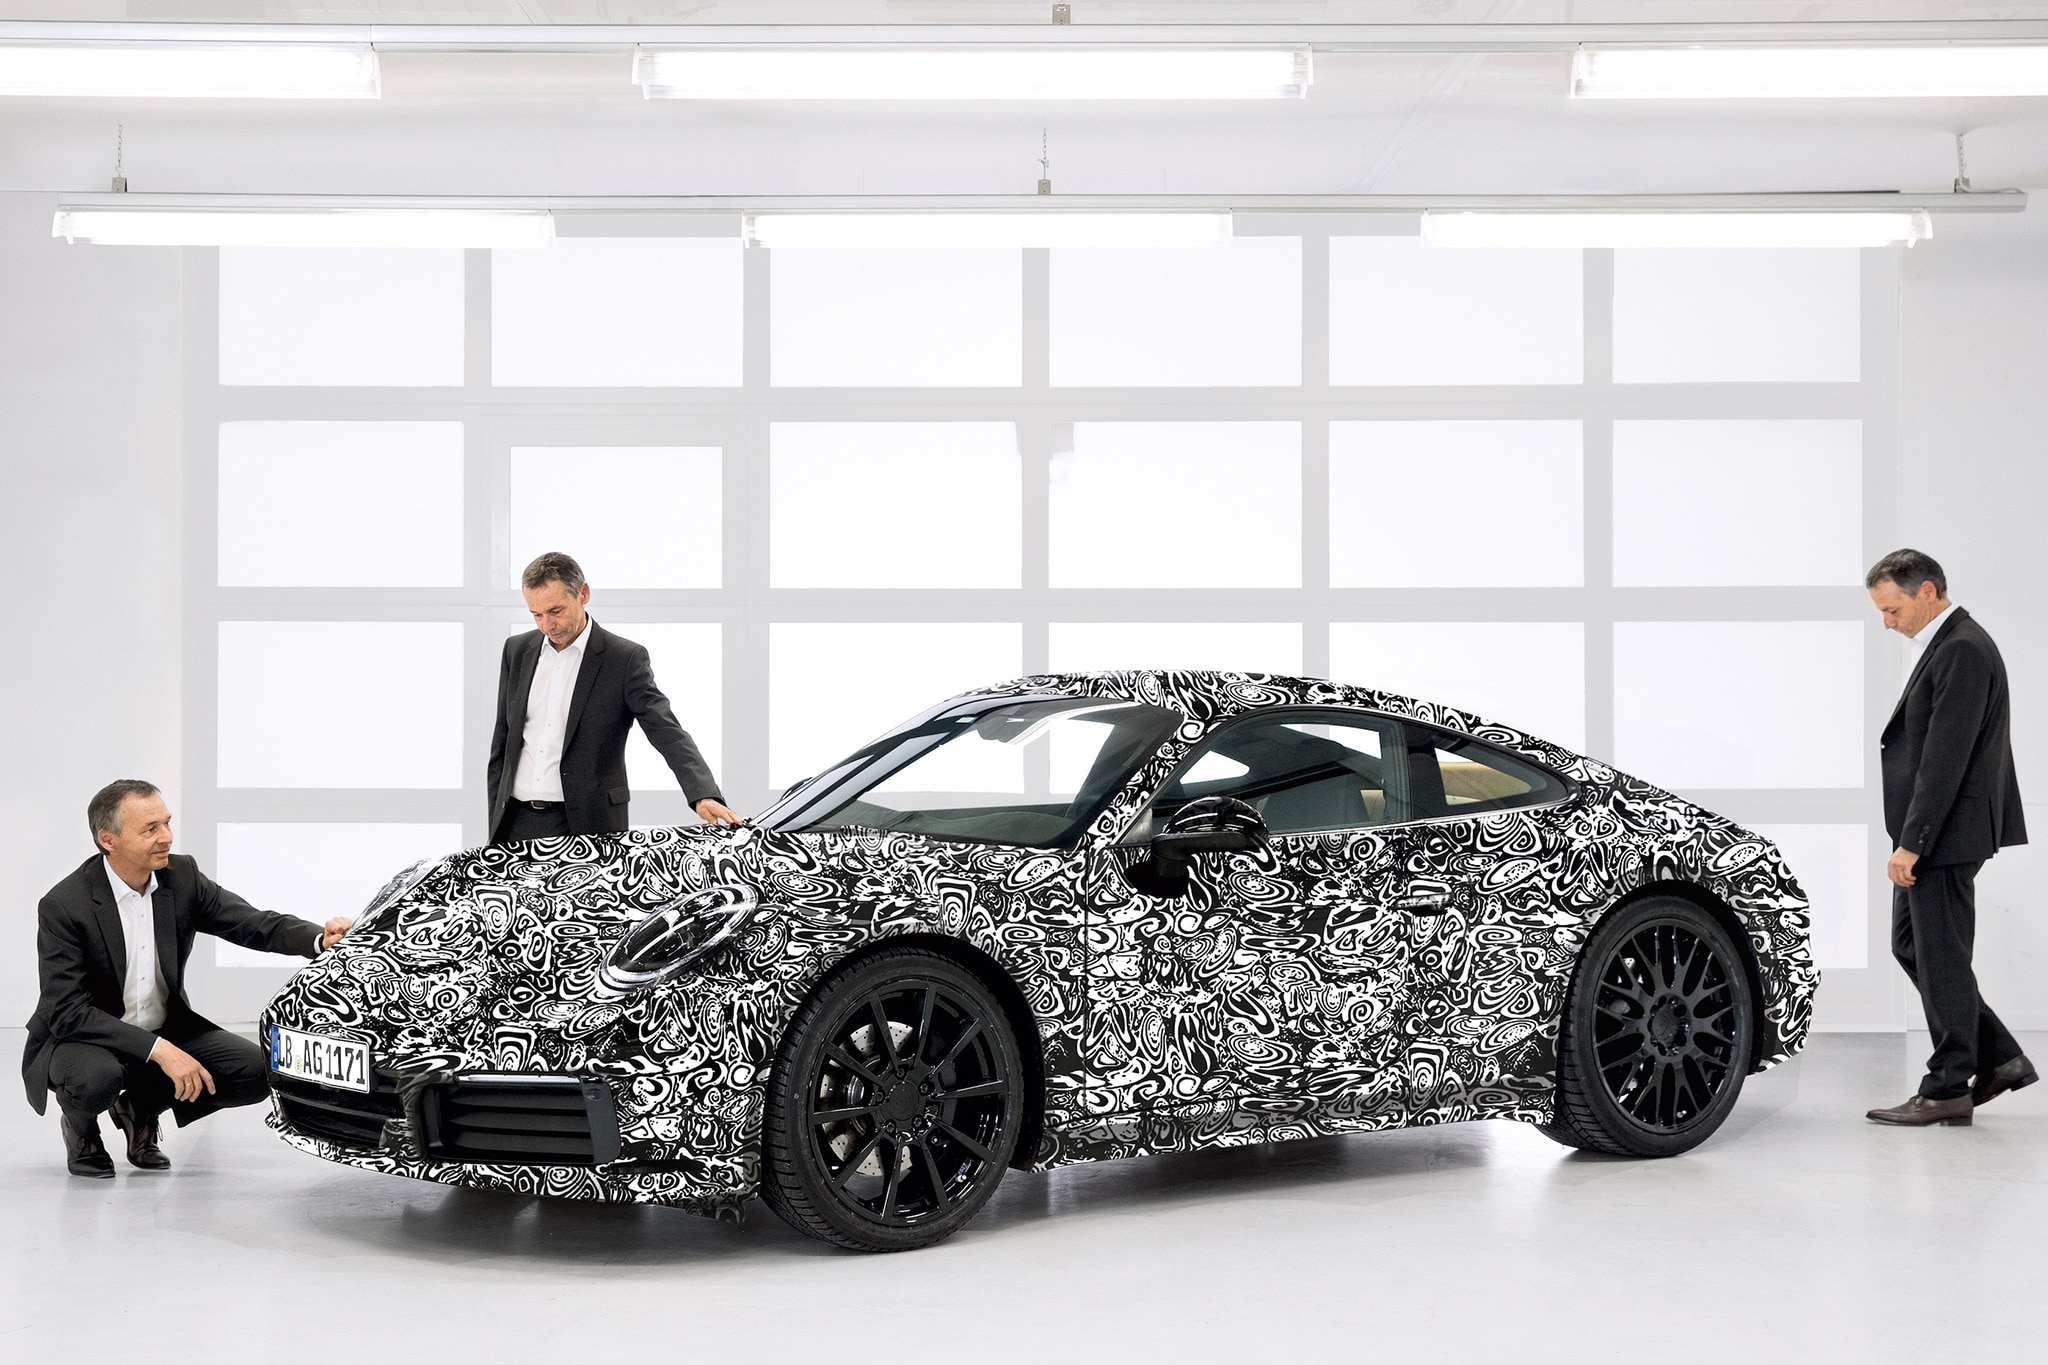 Next-Generation Porsche 911 (992) Gets Official Preview